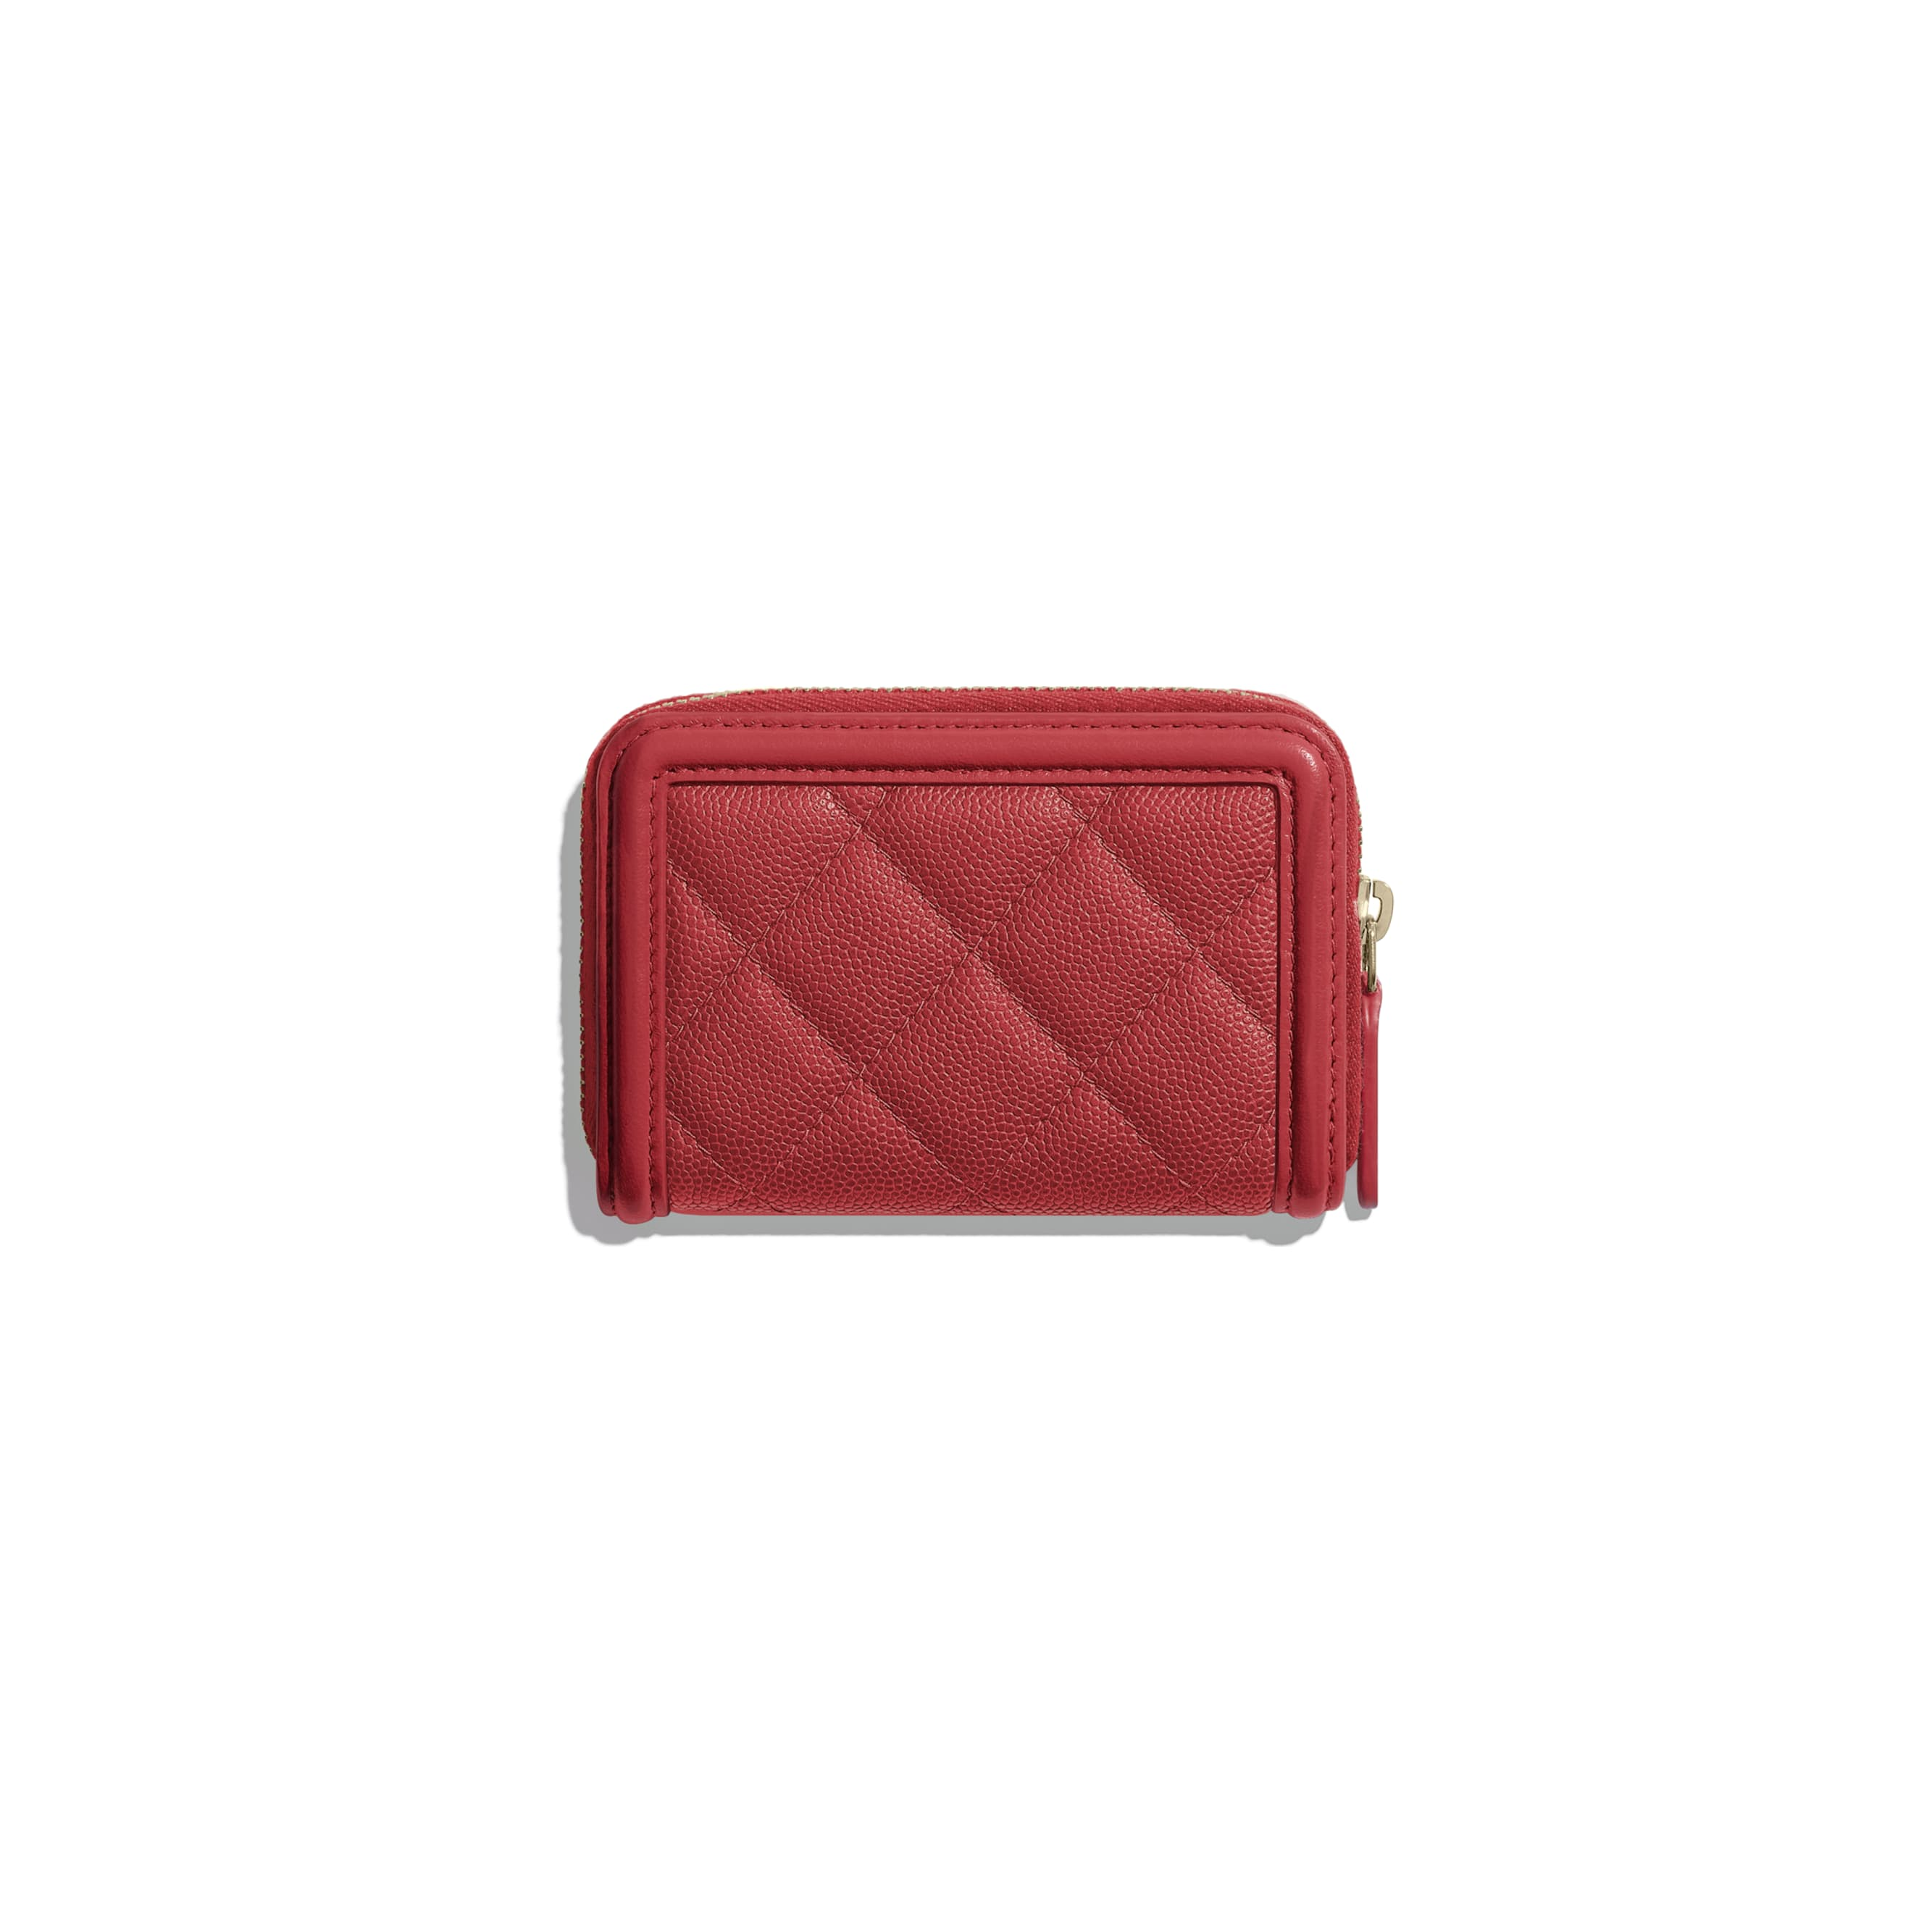 Zipped Coin Purse - Red - Grained Calfskin & Gold-Tone Metal - CHANEL - Alternative view - see standard sized version